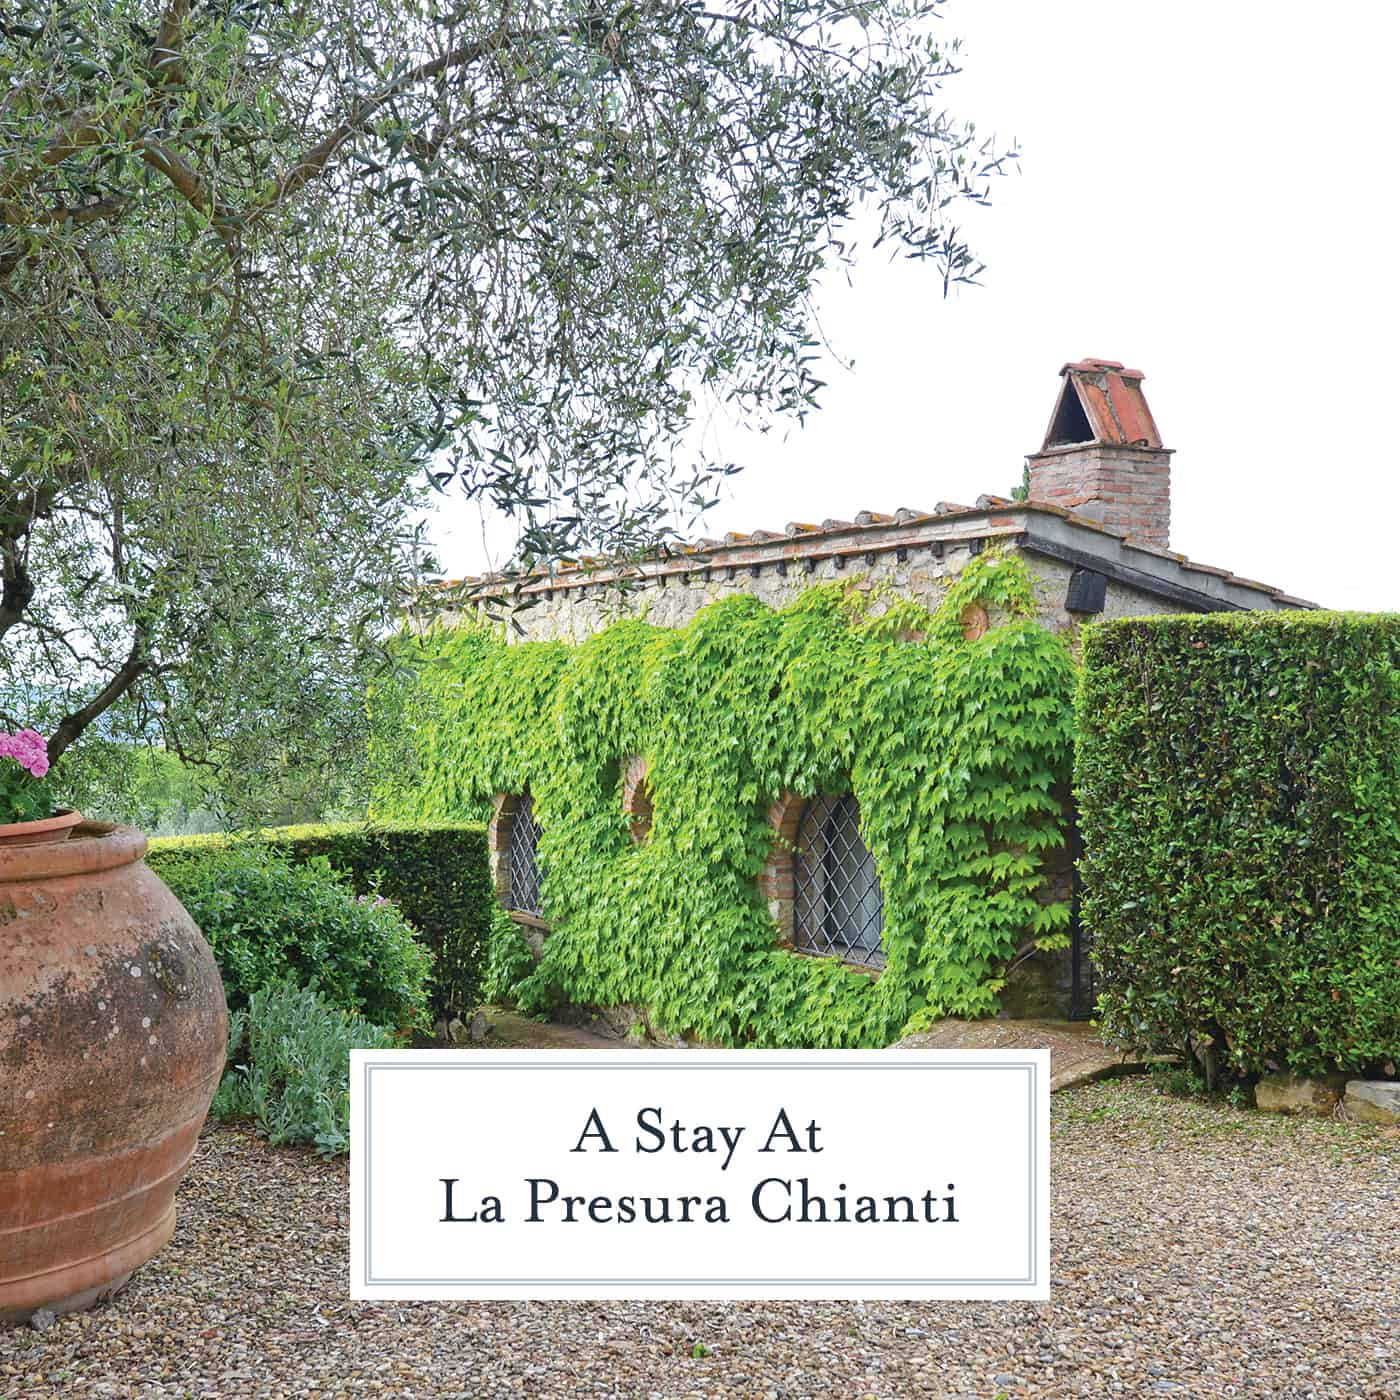 Planning your trip to Tuscany should include a visit to La Presura, a quaint location in Strada in Chianti. The perfect getaway from the bustle of Florence. #chianti #visittuscany www.savoryexperiments.com